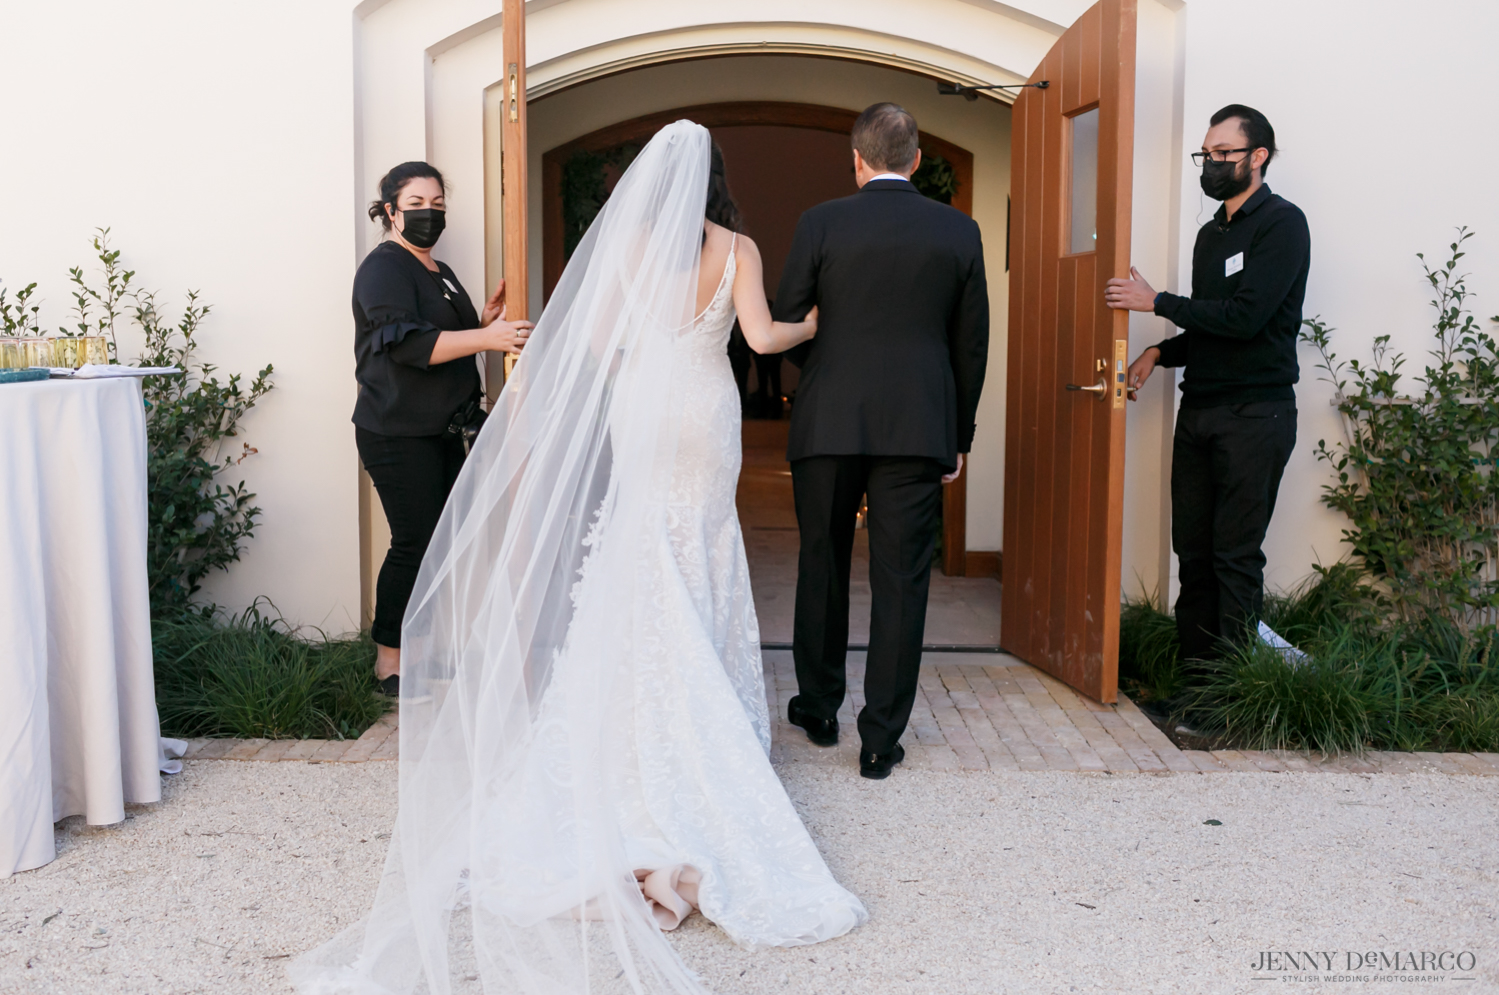 father of the bride walking his daughter into her wedding ceremony as her veil flows behind her